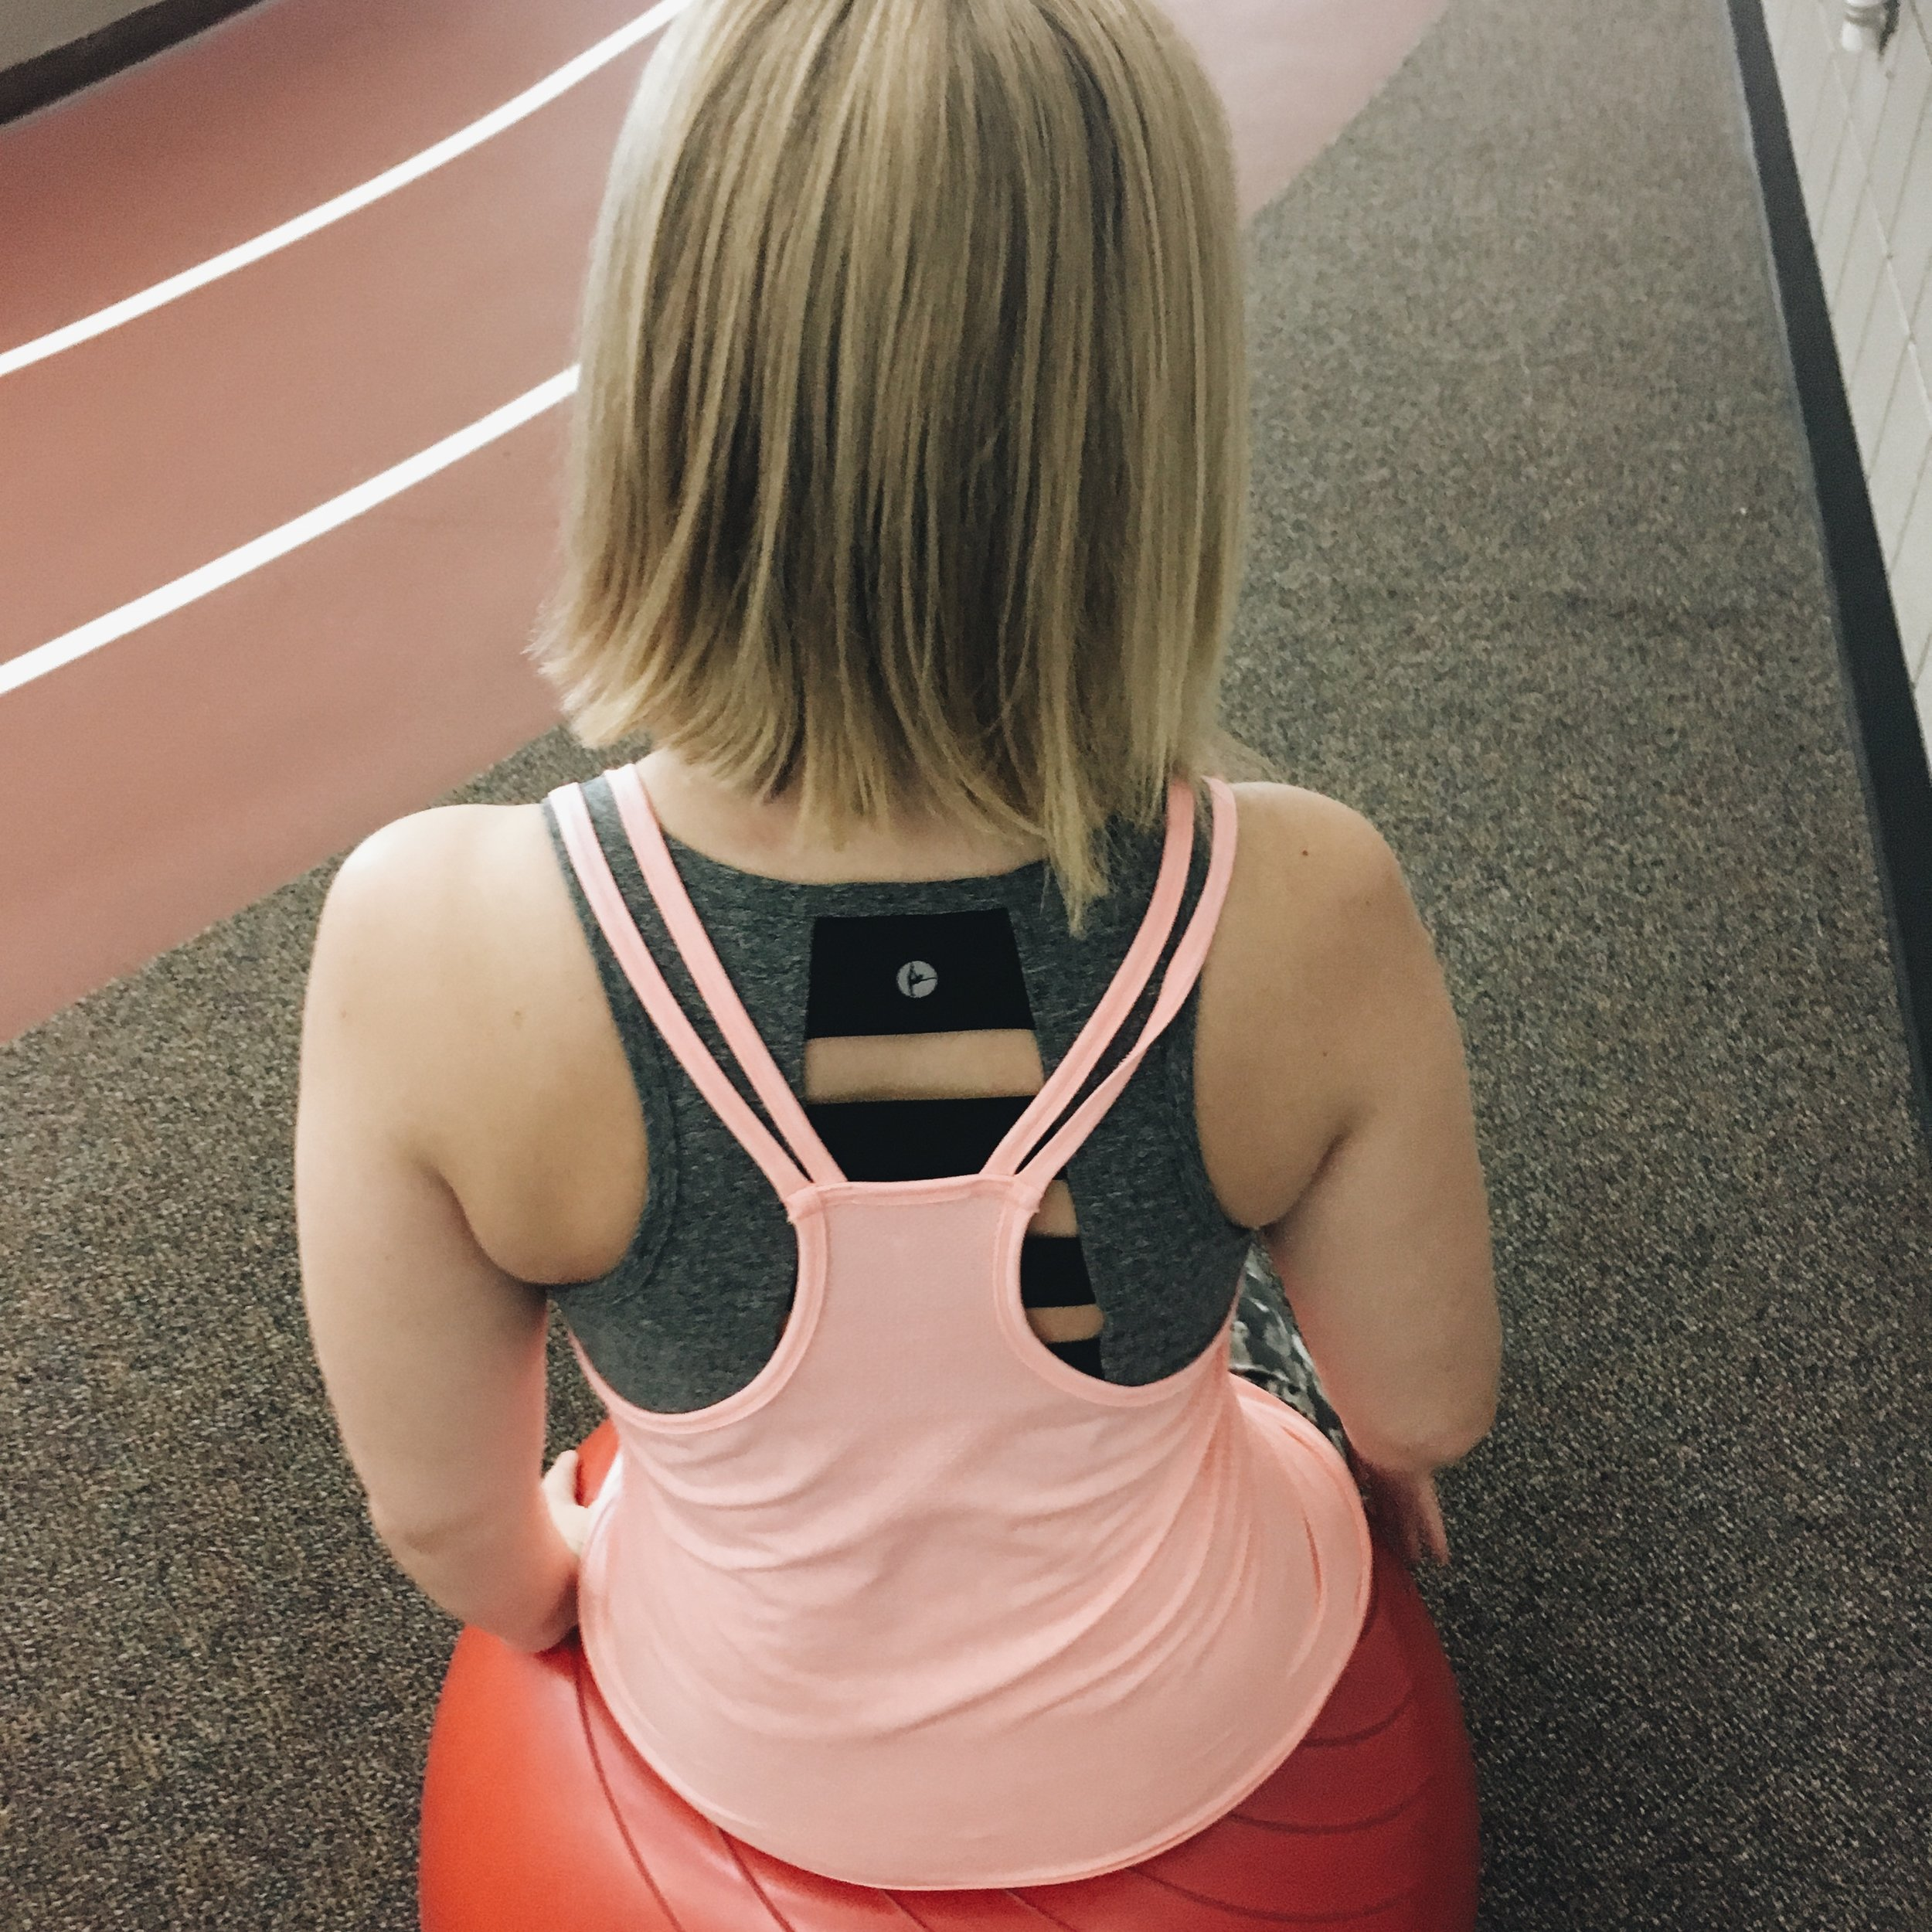 Fun stuff means the gym is less horrific. Like cool sports bras.